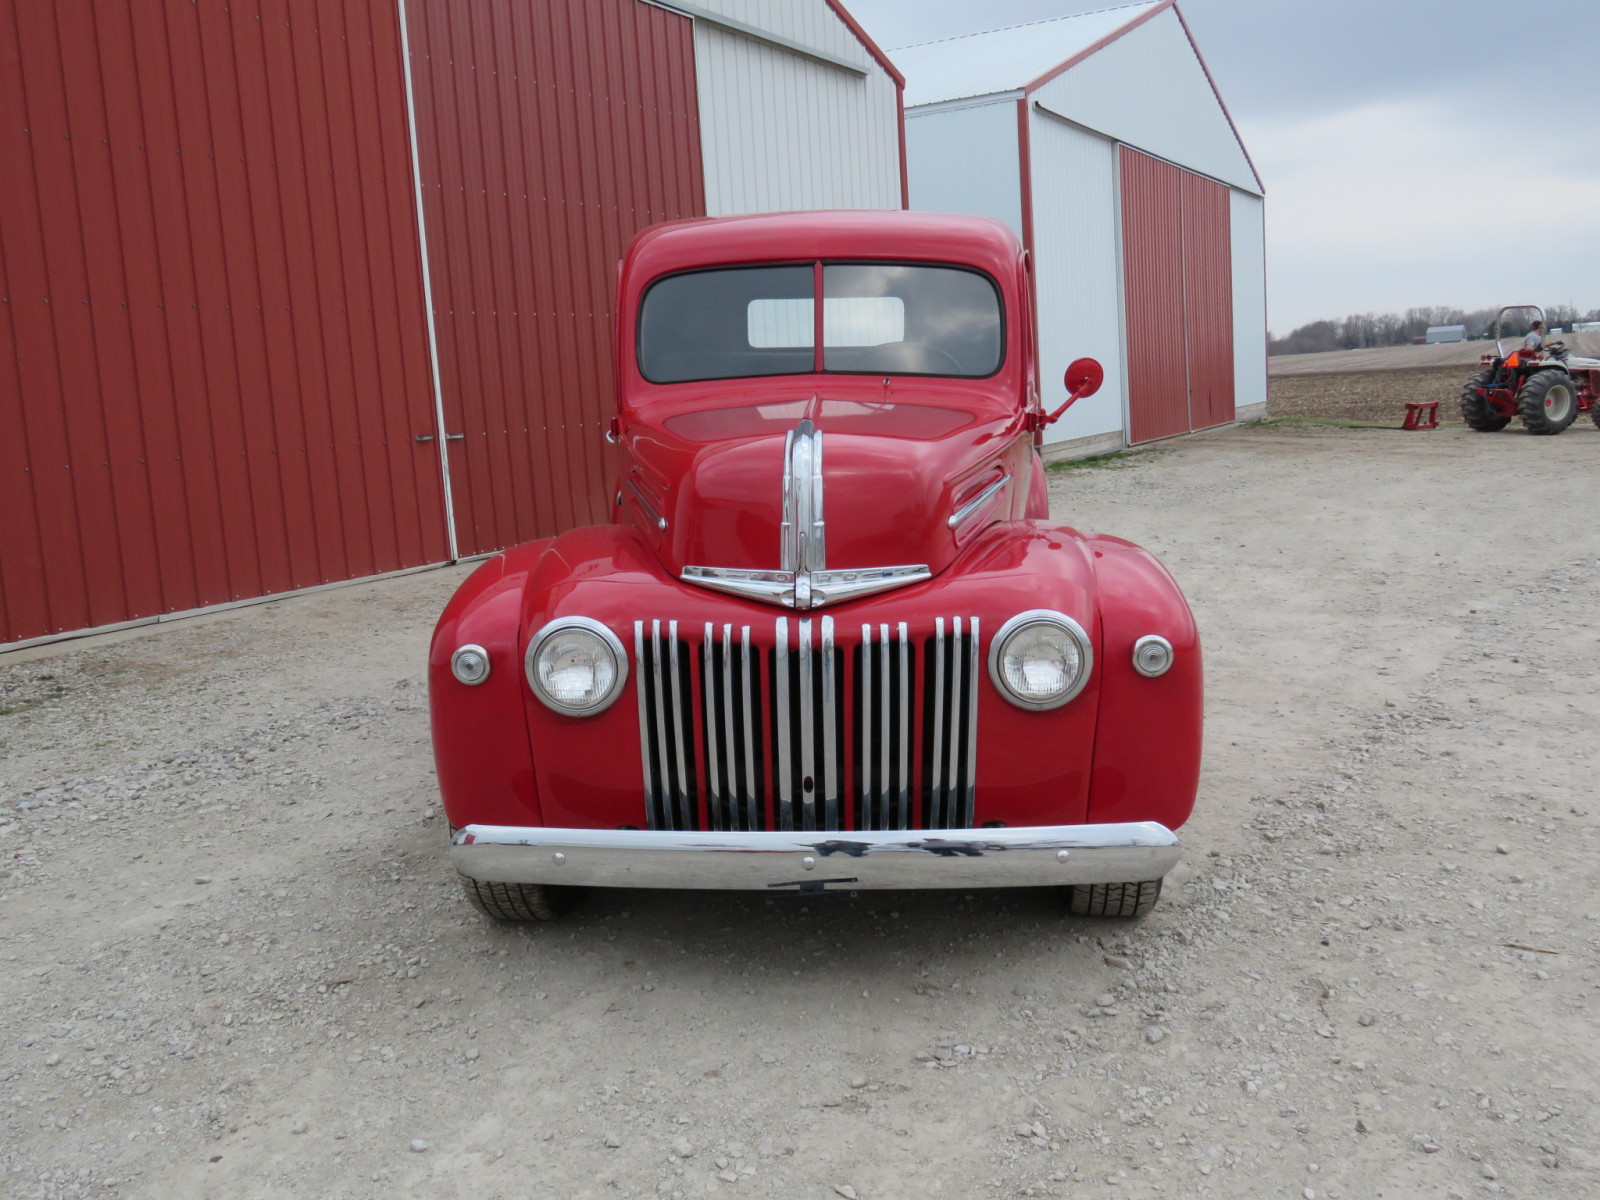 1946 Ford Pickup - Image 2